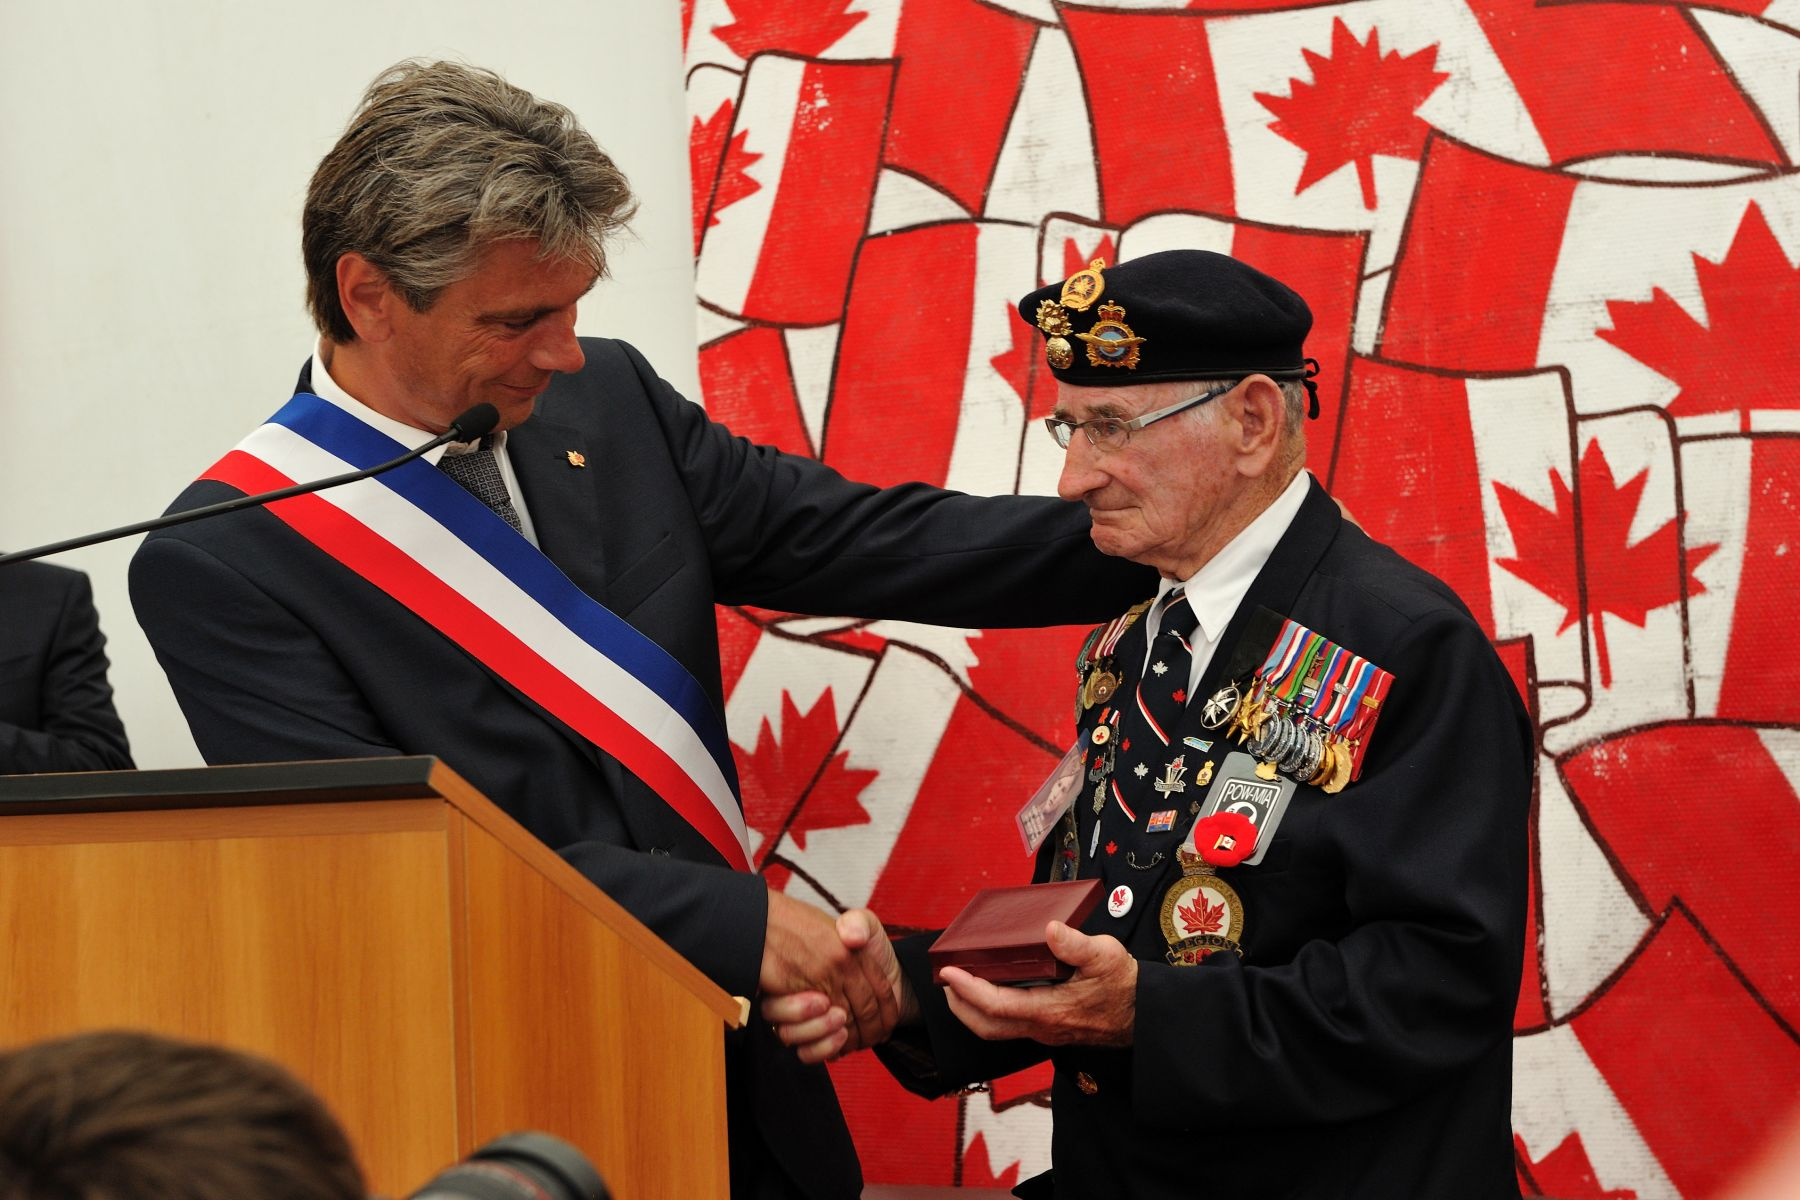 During a reception hosted by the City of Dieppe, the Mayor, Mr. Sébastien Jumel, presented a medal of honour to Mr. Jacques Nadeau, a Canadian veteran of the Dieppe Raid.